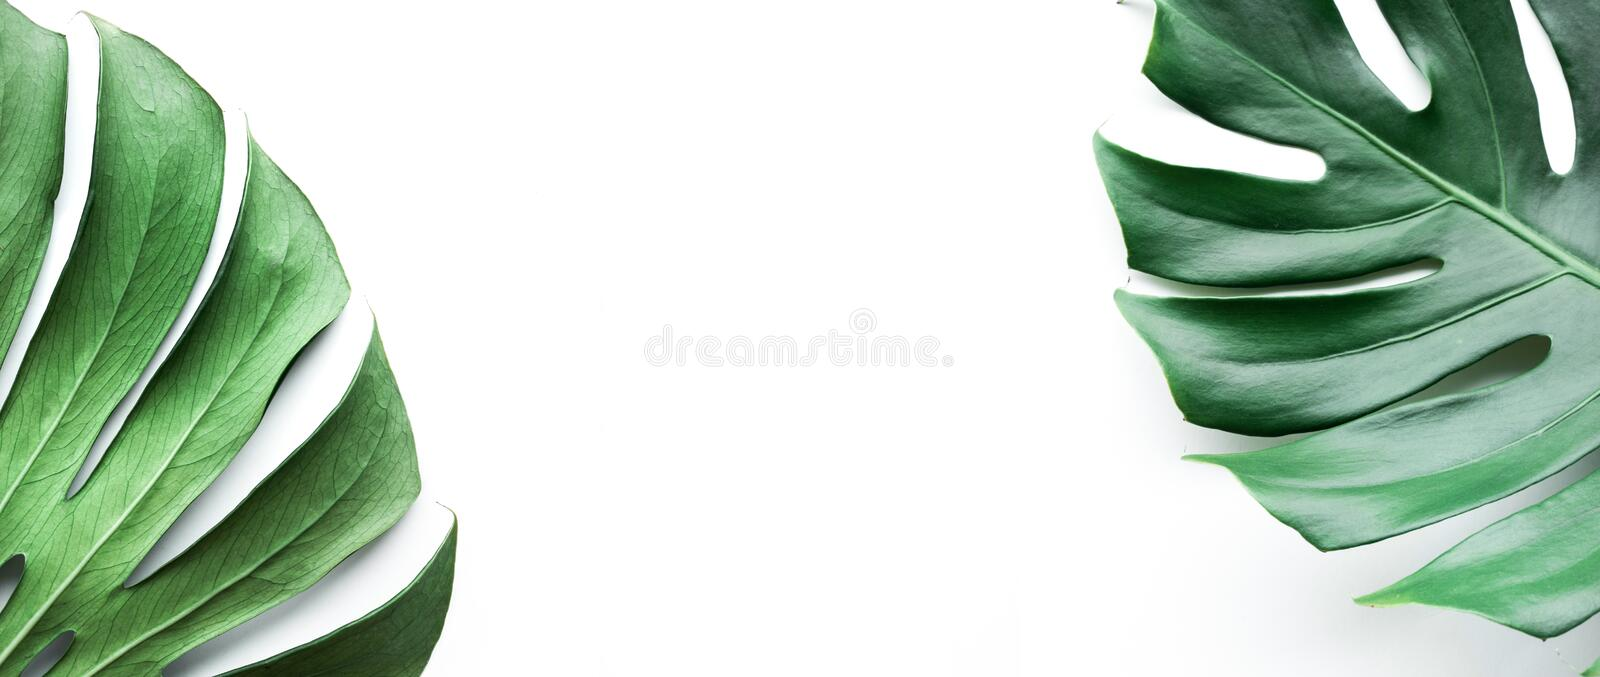 Real monstera leaves set on white background. stock image